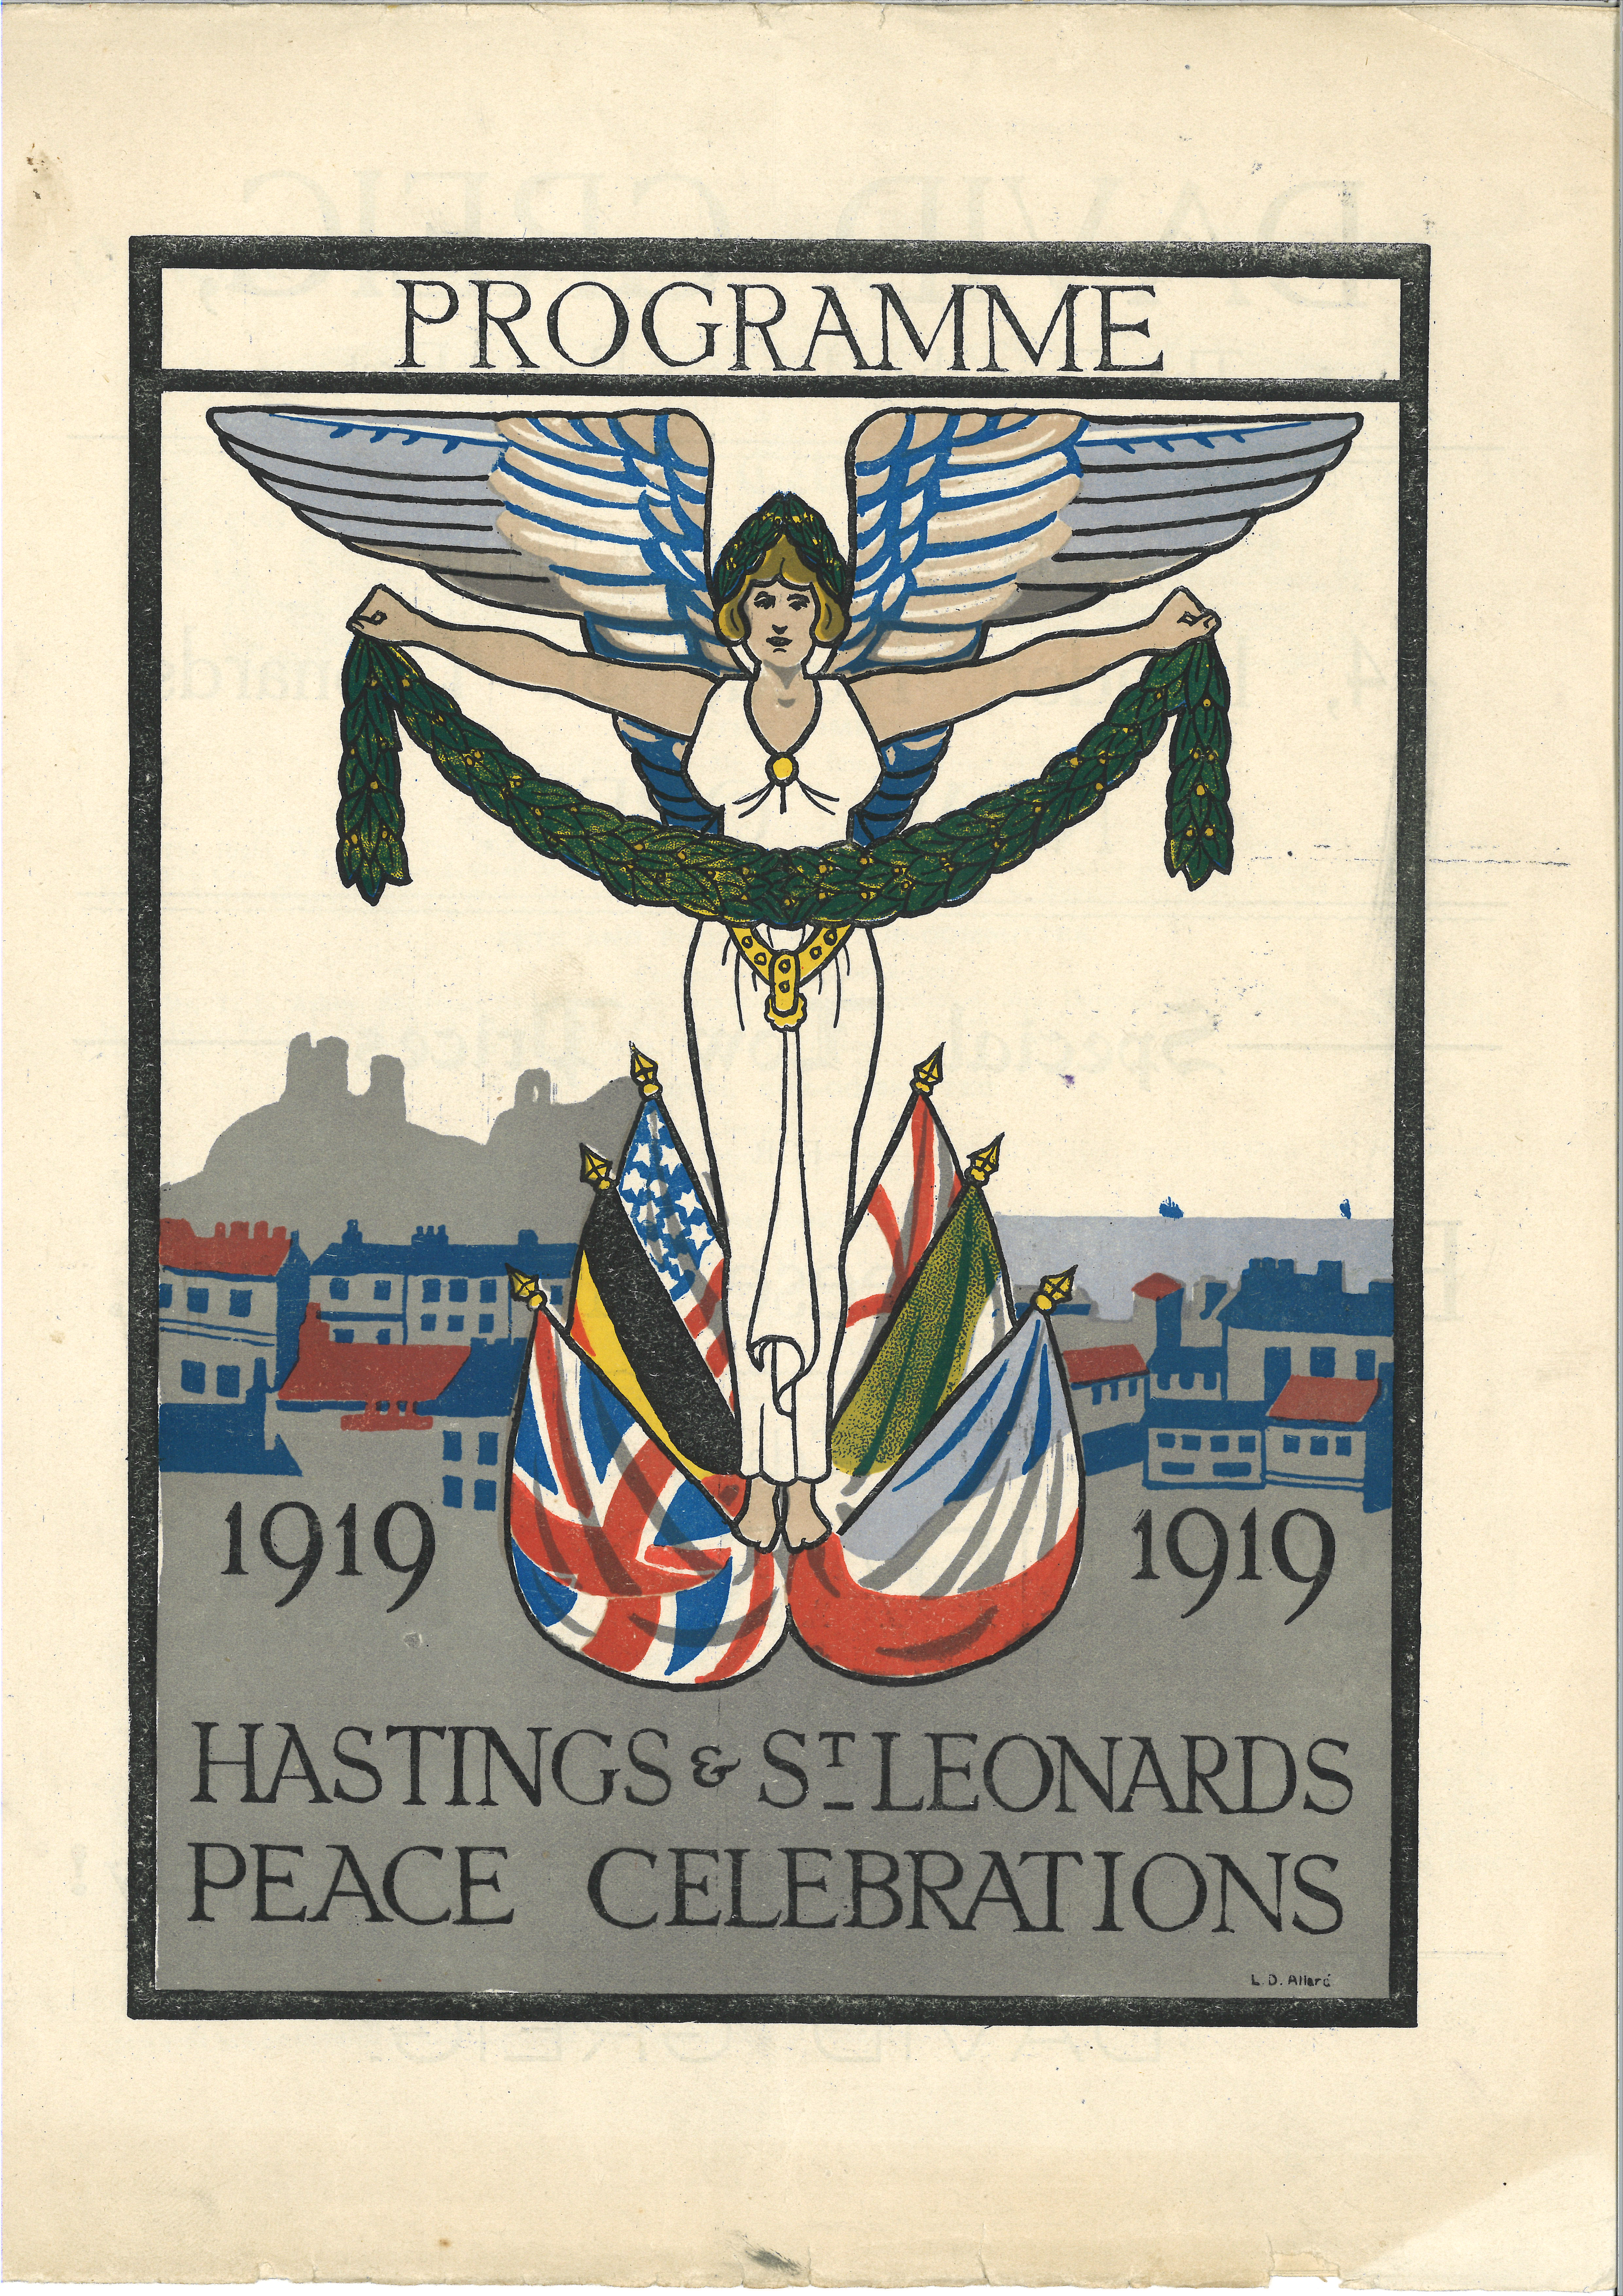 Centenary of end of WW1 marked by new exhibitions at Hastings museum